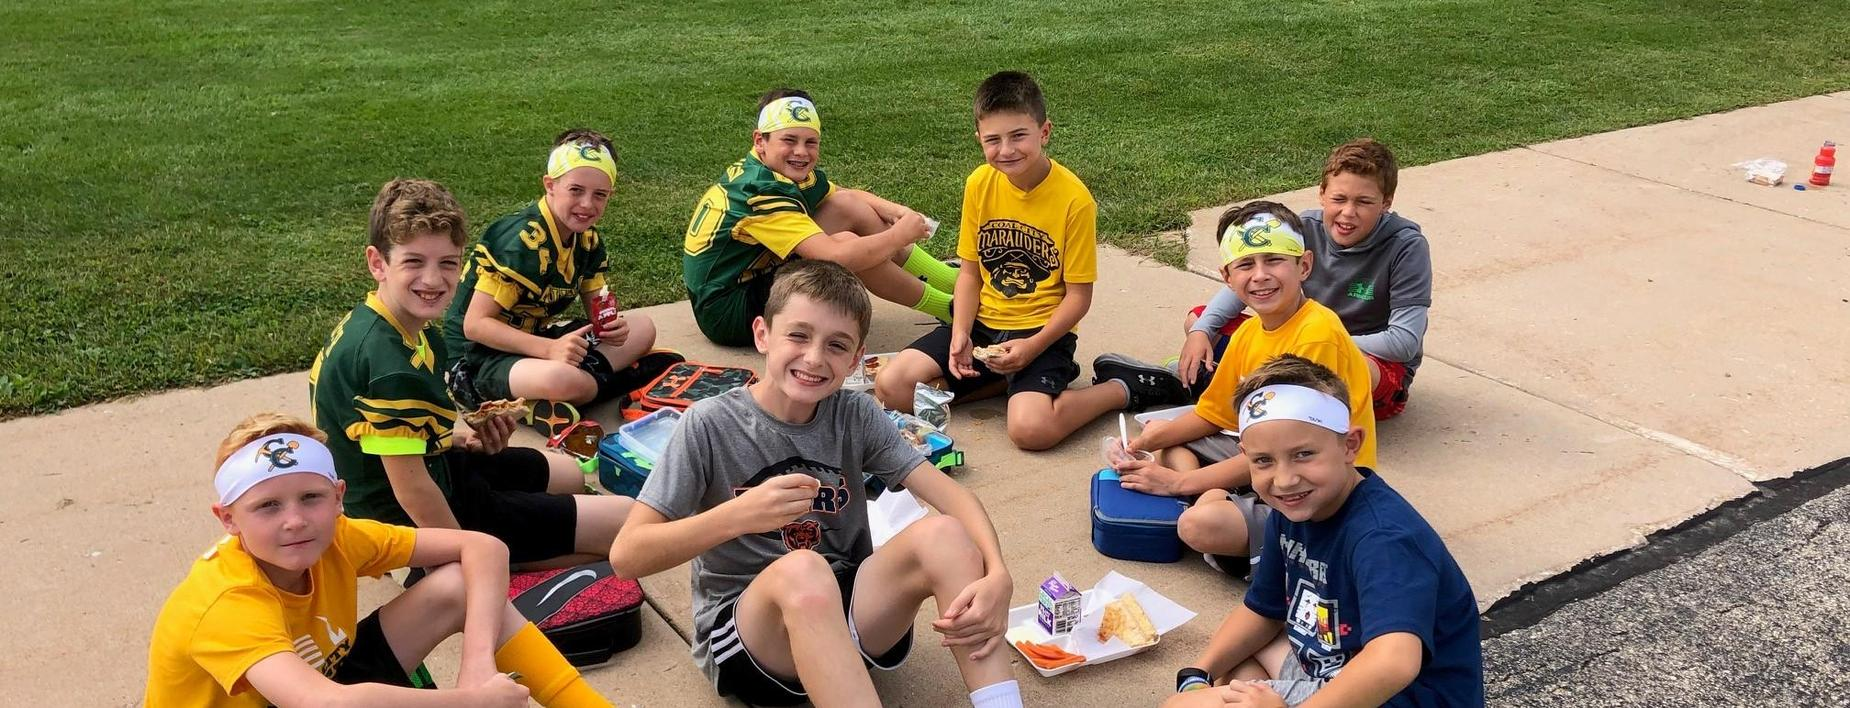 enjoying the beautiful weather outside during lunch at CCIS